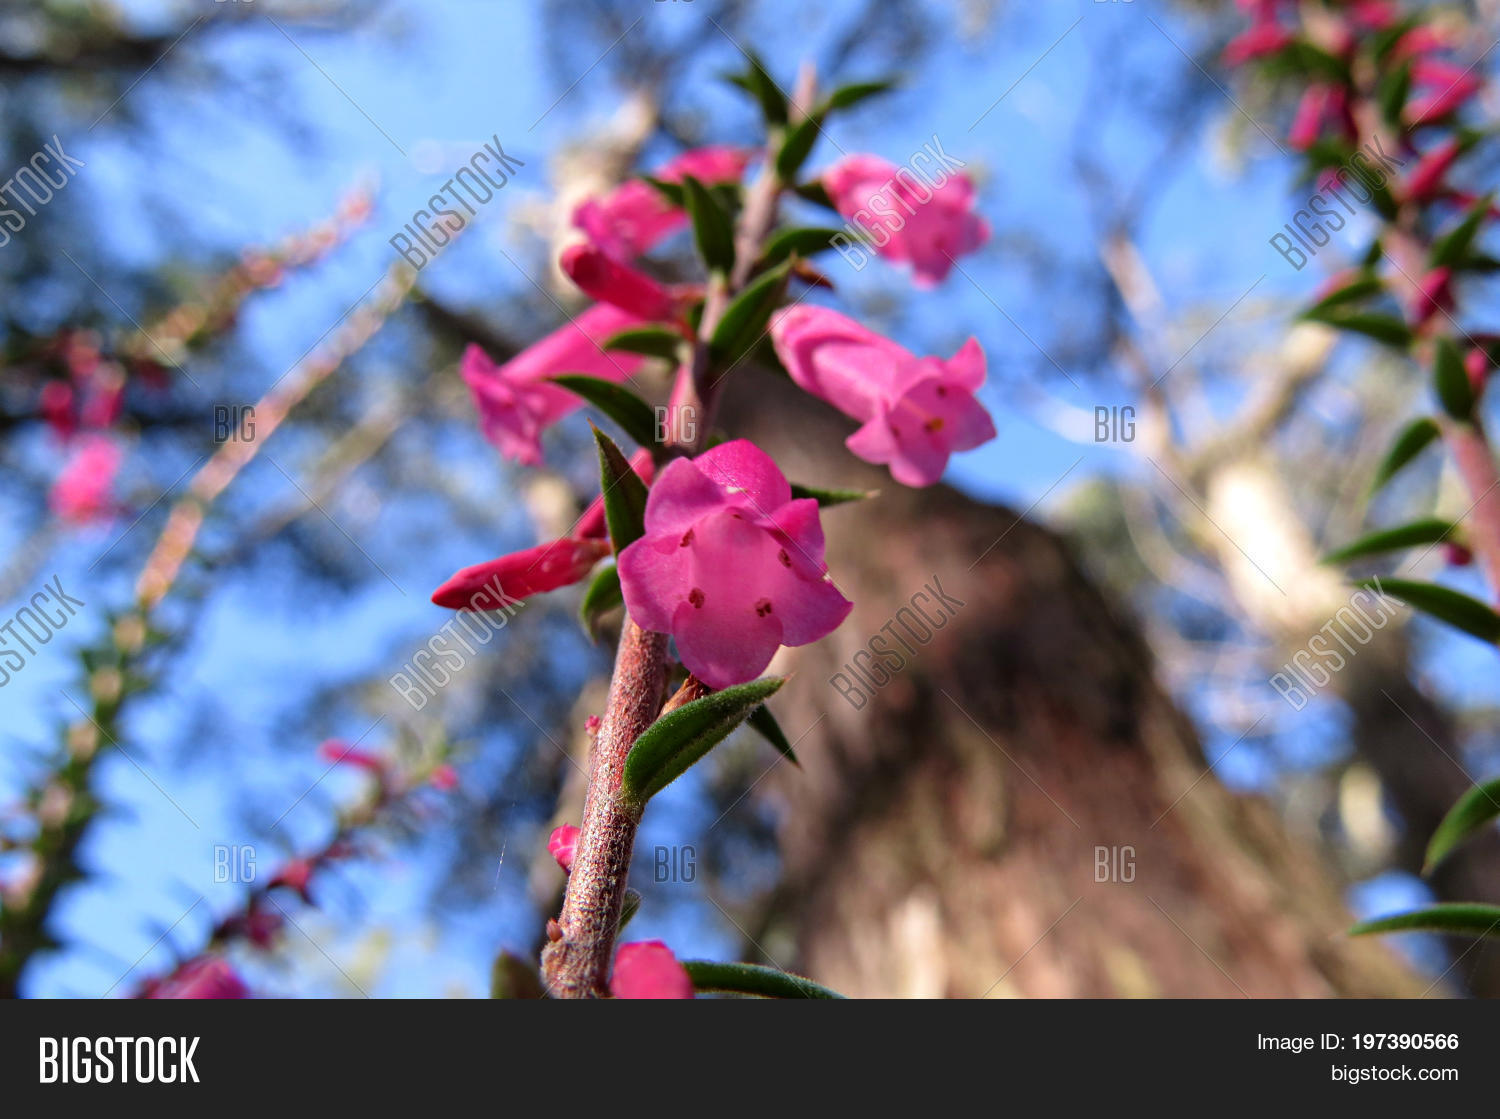 Pink correa flowers bell shaped image photo bigstock pink correa flowers bell shaped flower plant in australian bush land mightylinksfo